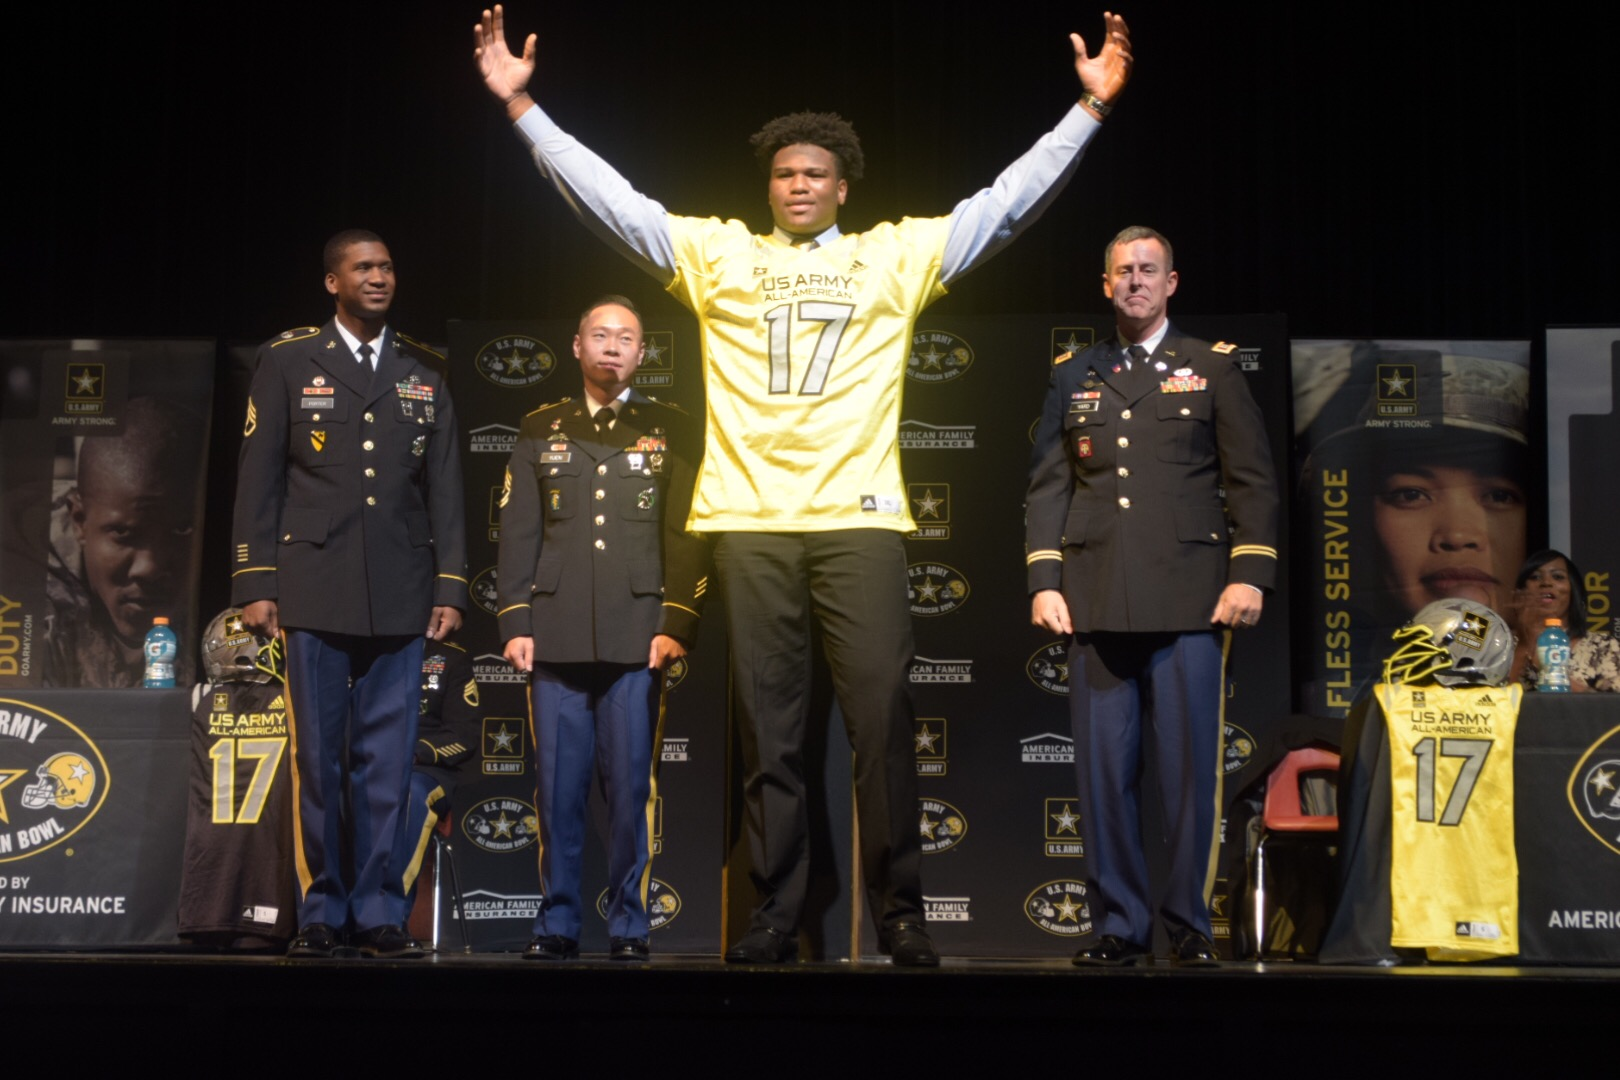 Jayden Peevy reacts after receiving his Army All-American Bowl jersey (Photo: Army All-American Bowl)